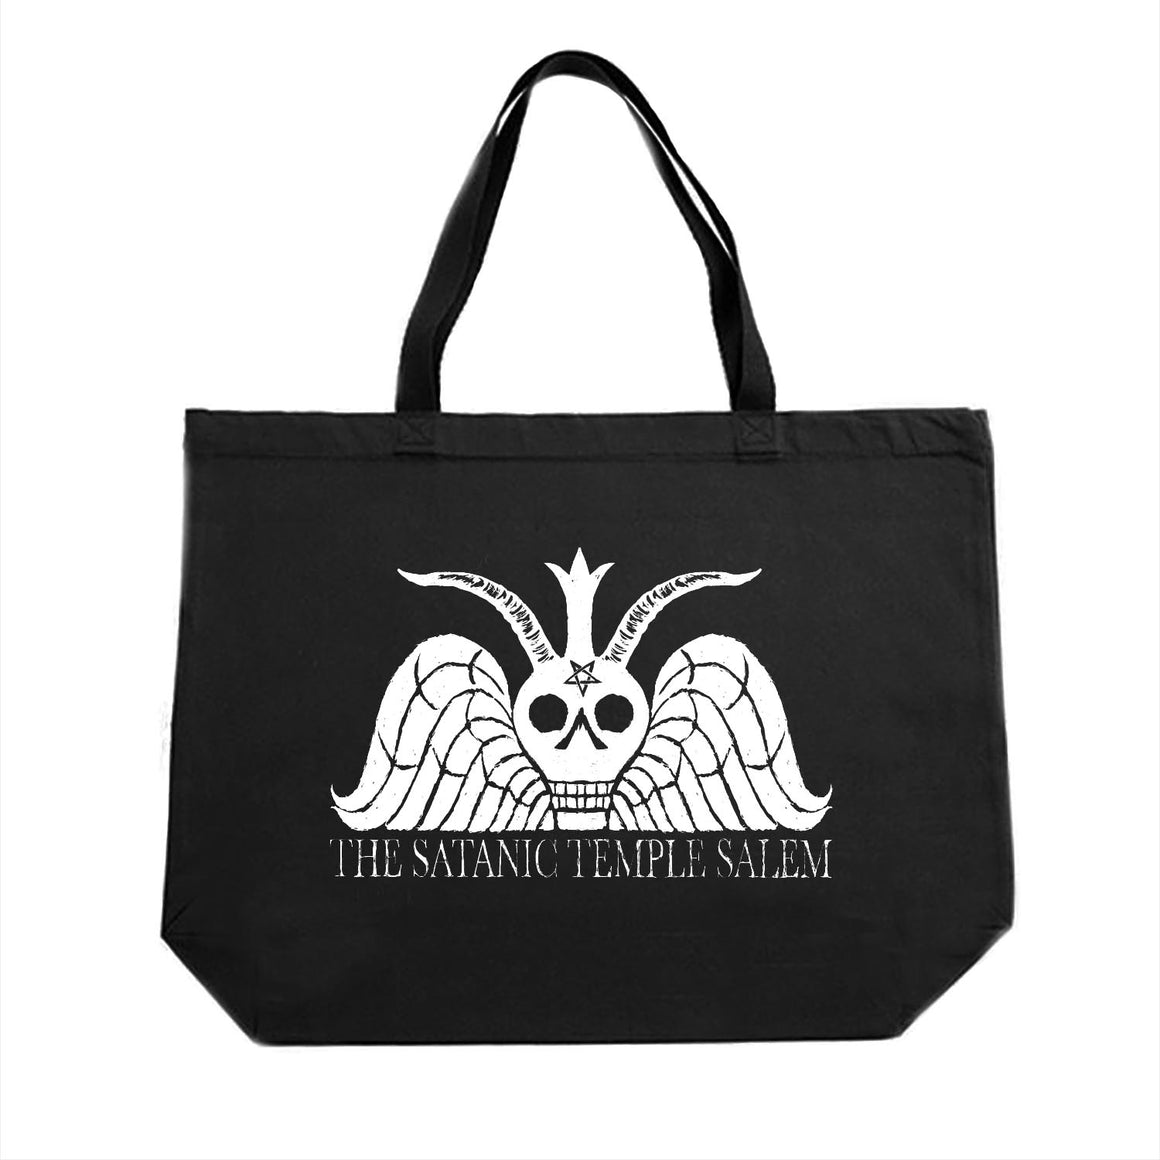 The Satanic Temple Salem Winged Baphomet tote